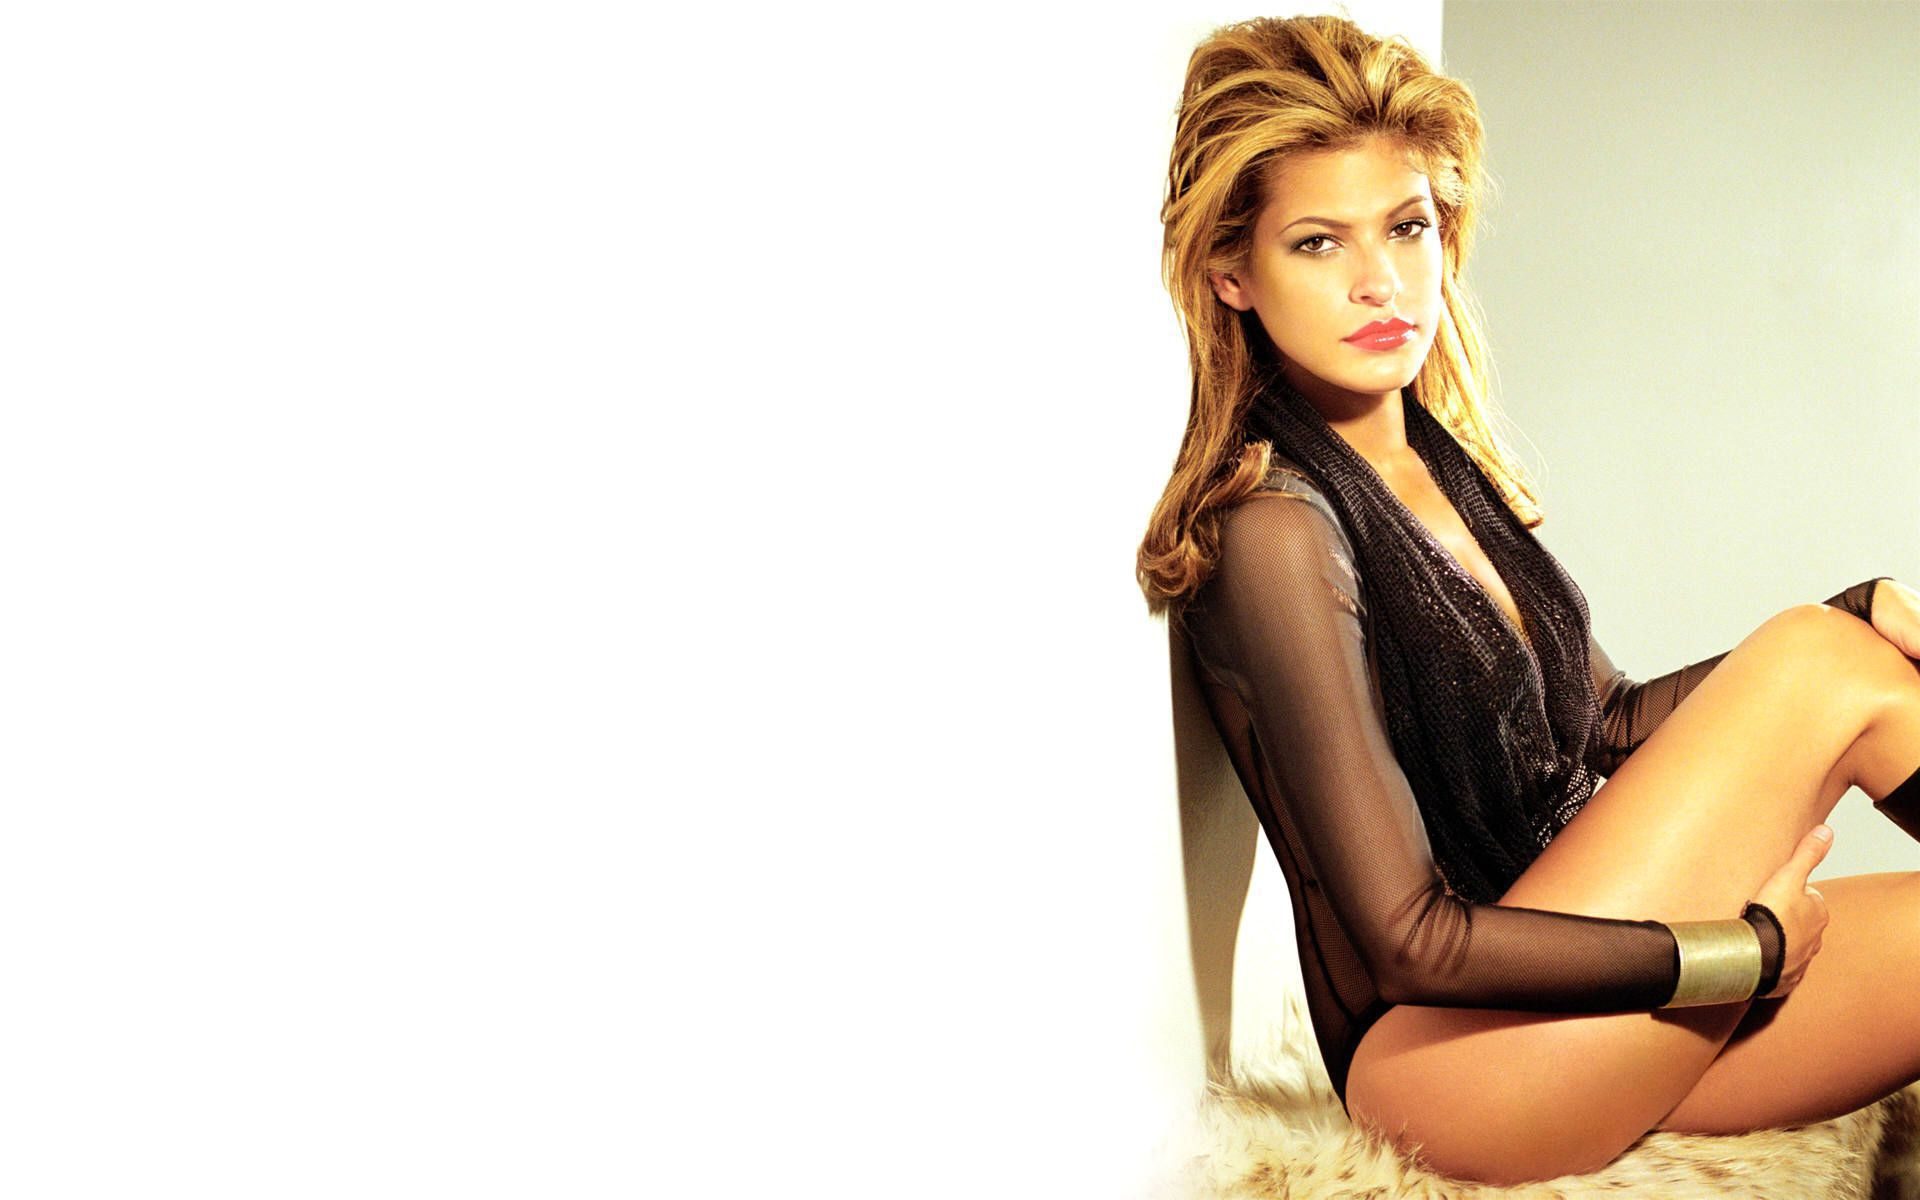 All White Cars Wallpaper Eva Mendes Wallpapers Backgrounds